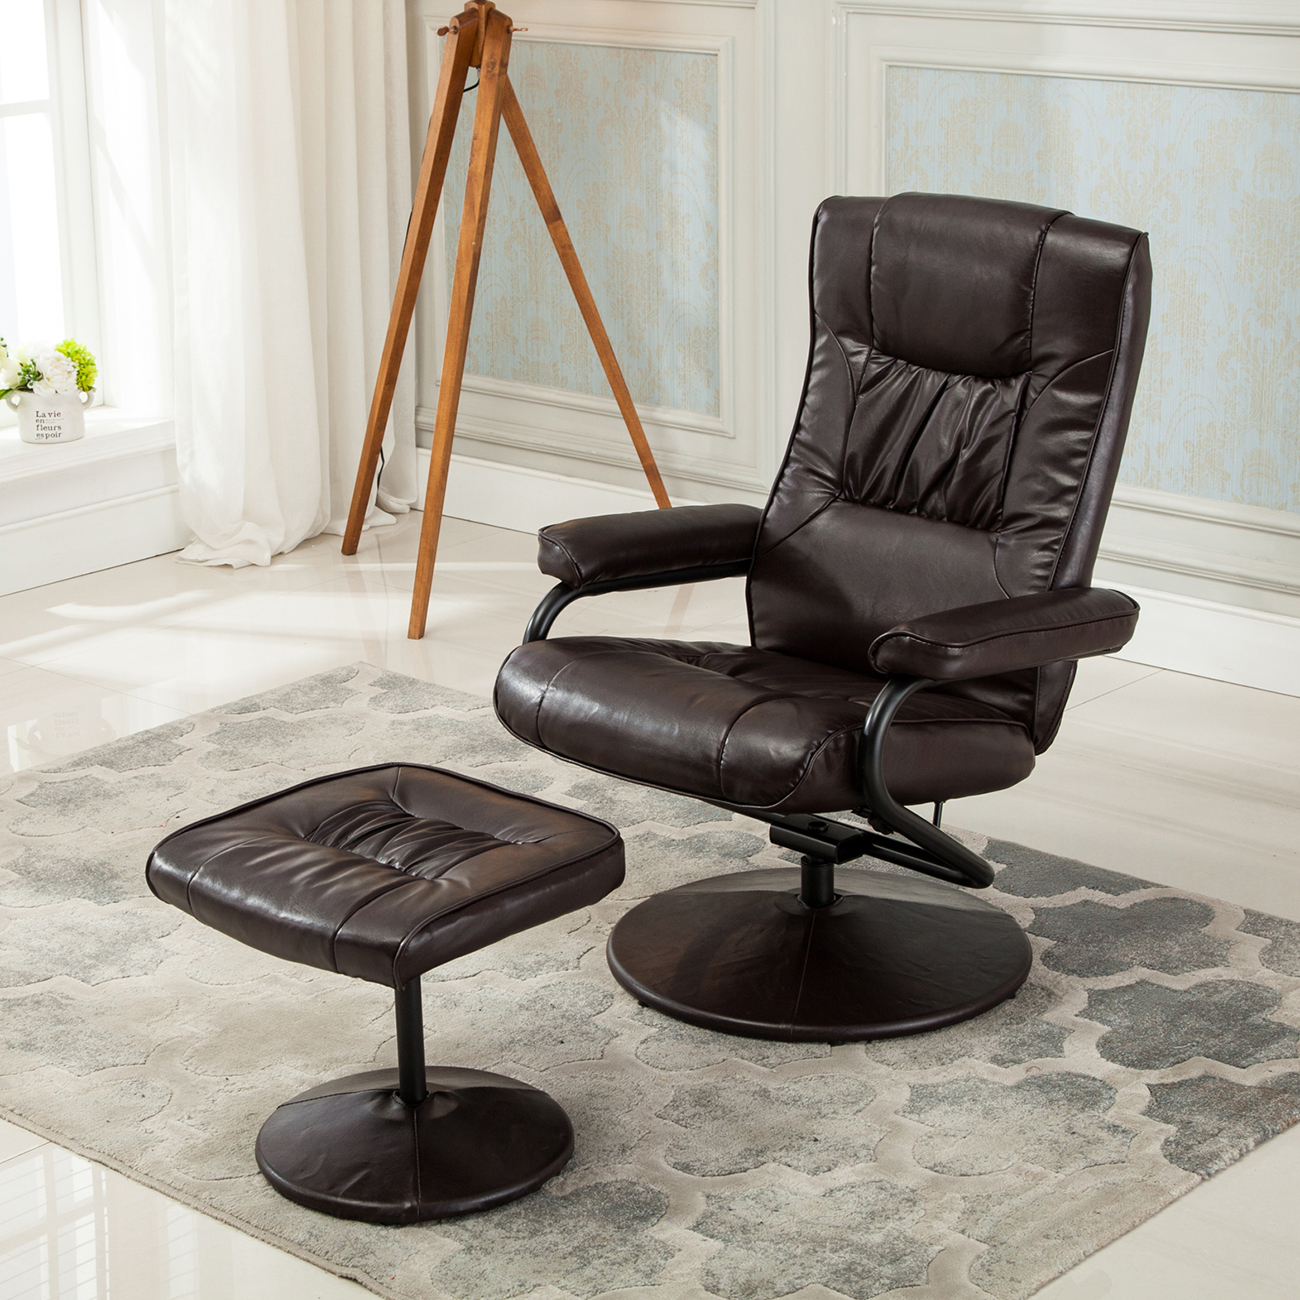 Leather Swivel Recliner Chairs New Executive Faux Leather Seat Chair Recliner Swivel